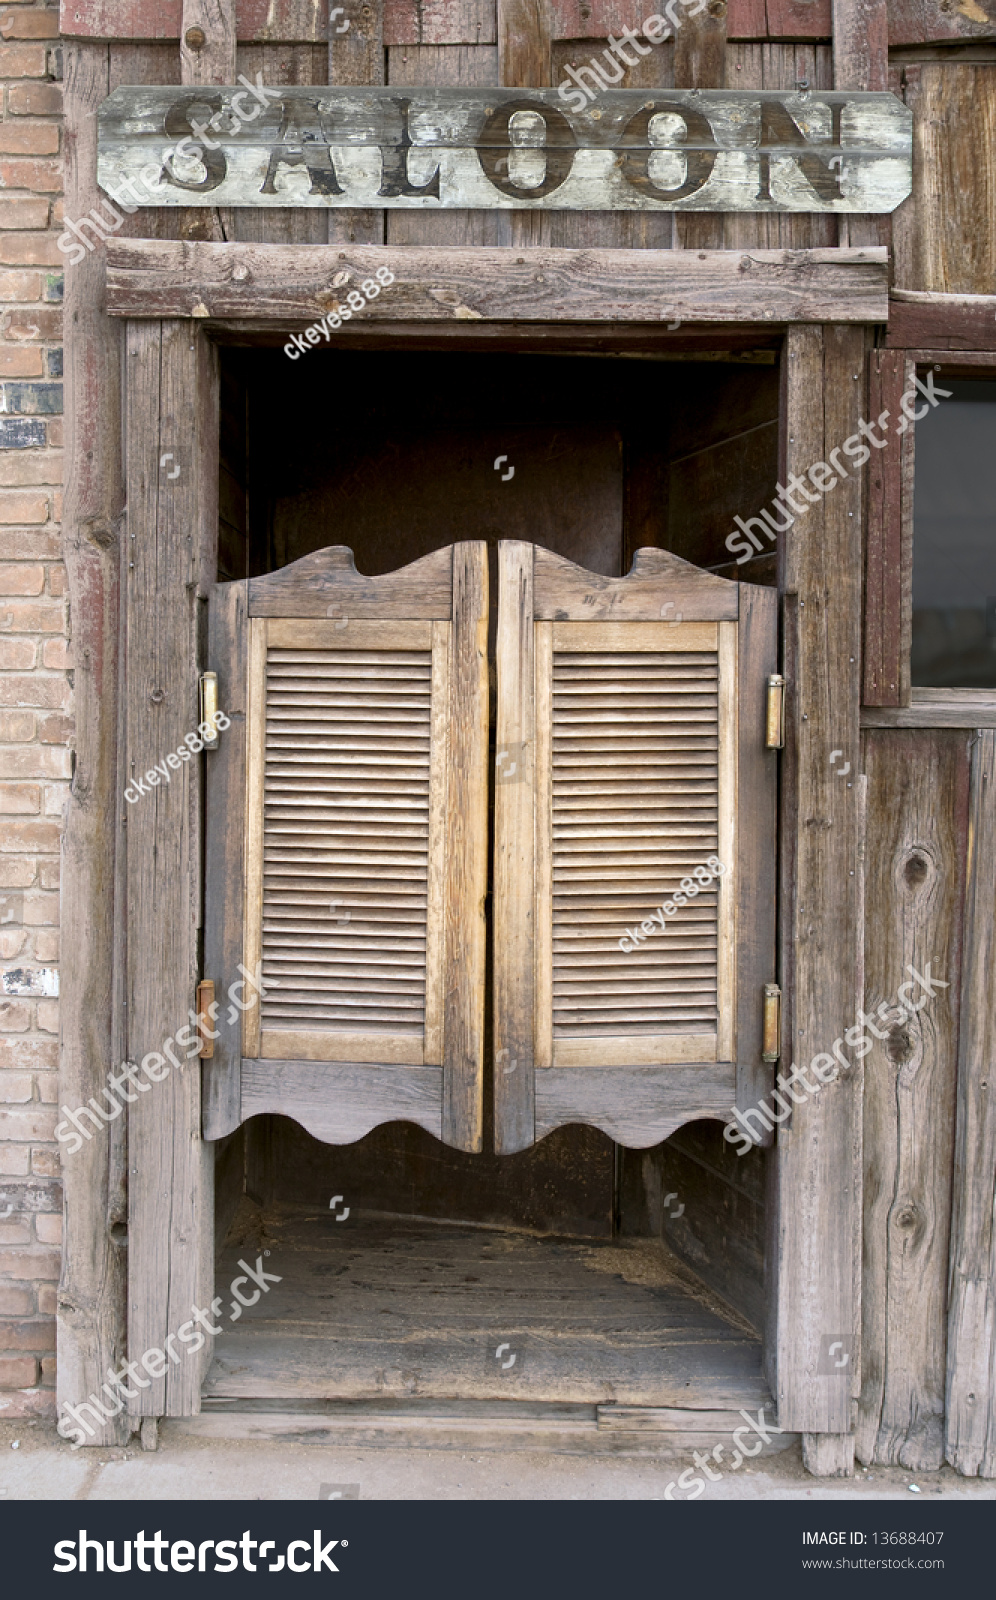 Old Western Swinging Saloon Doors Saloon Stock Photo